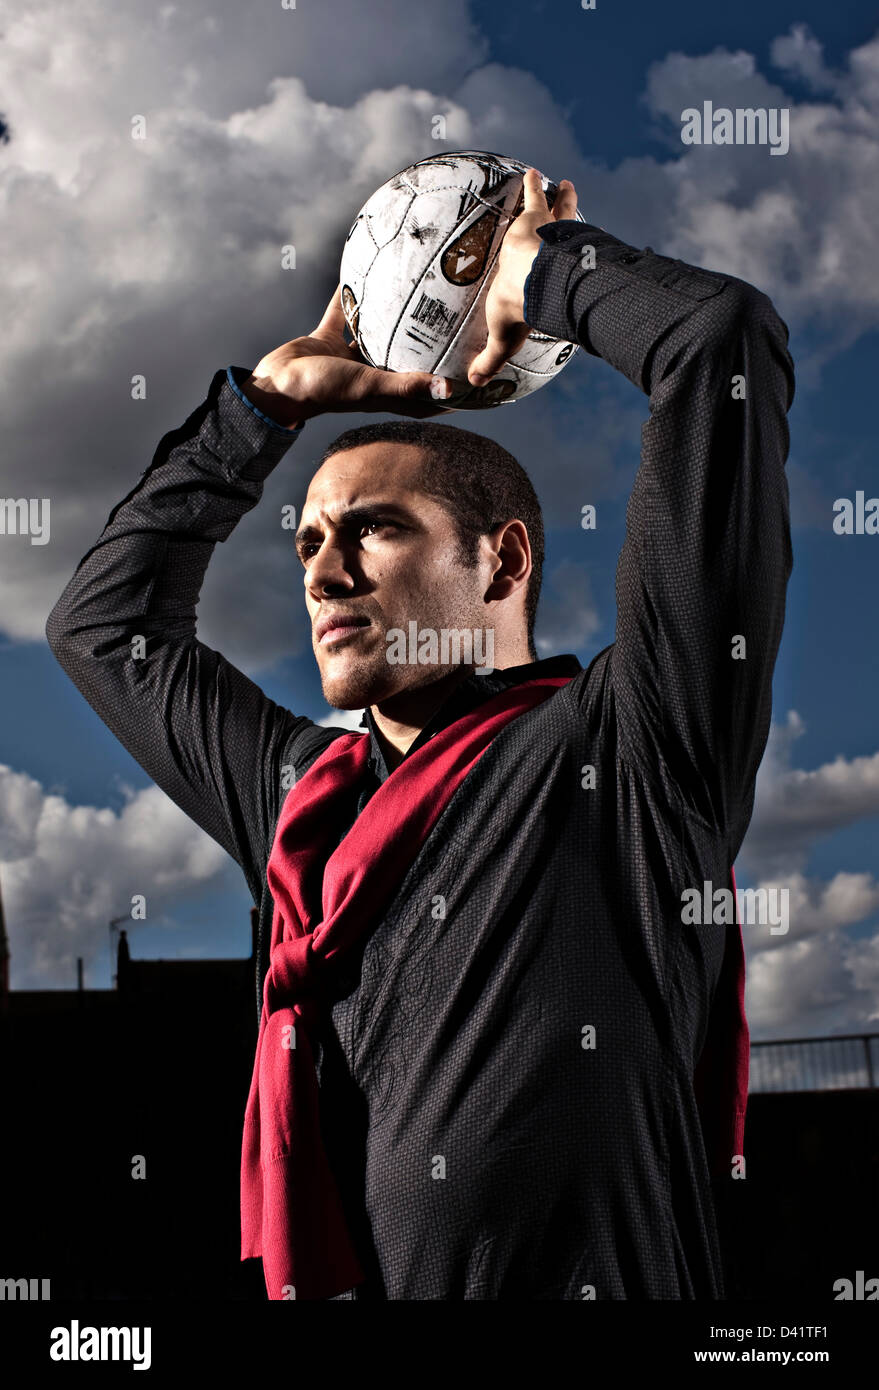 Footballer throwing ball in - Stock Image